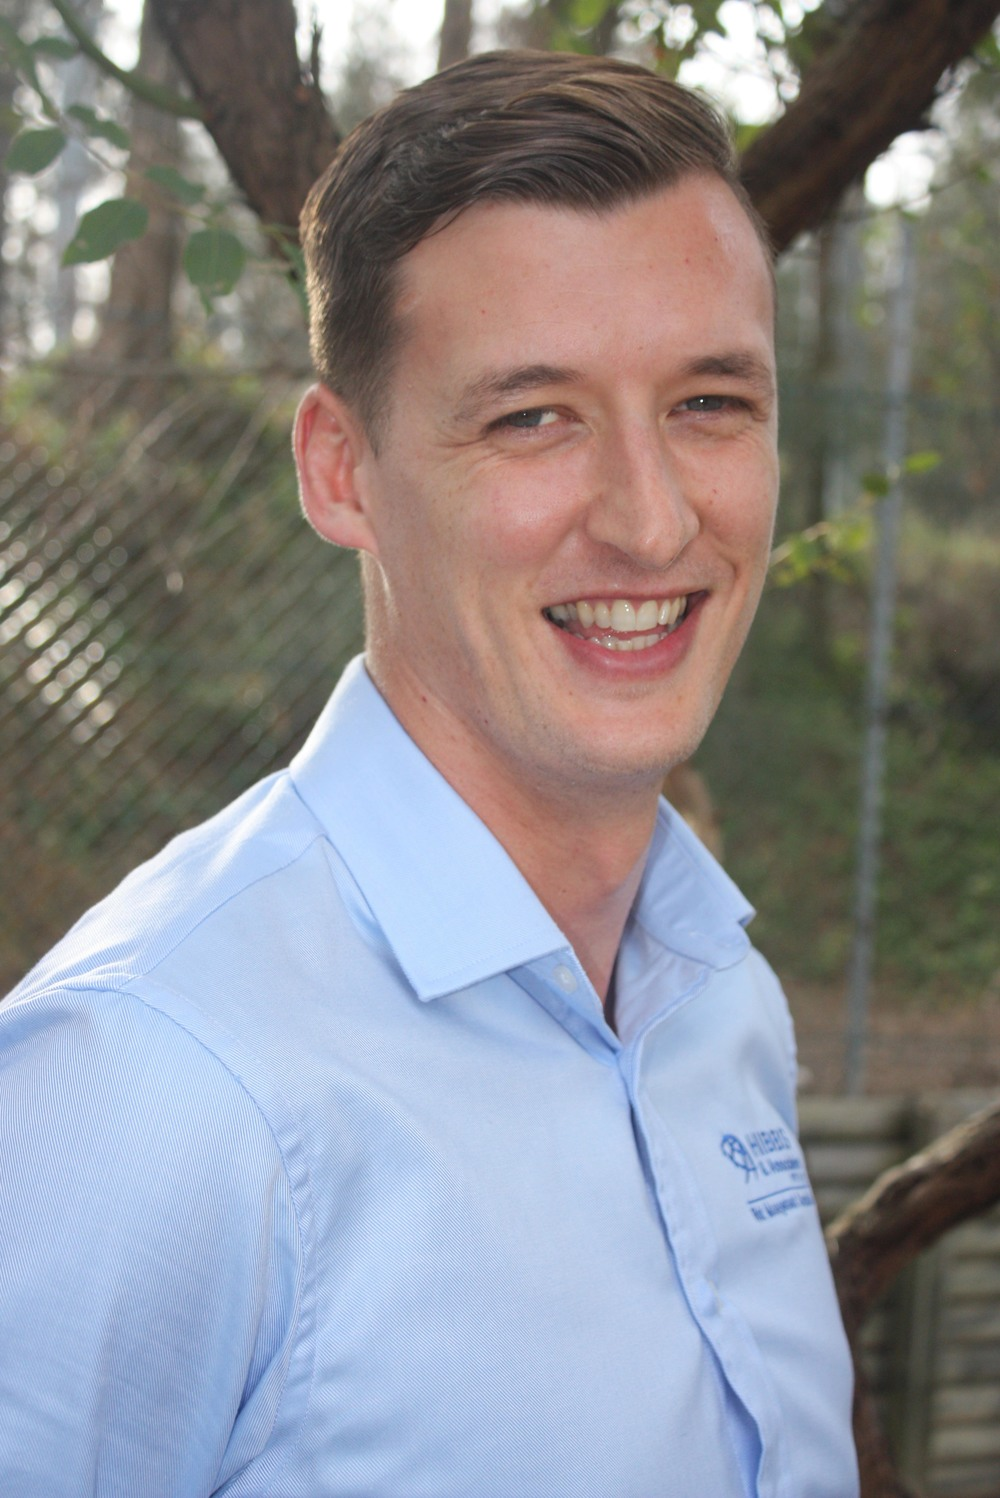 Mitchell Thompson - Principal Occupational Hygienist   Contact number: 0419 687 791